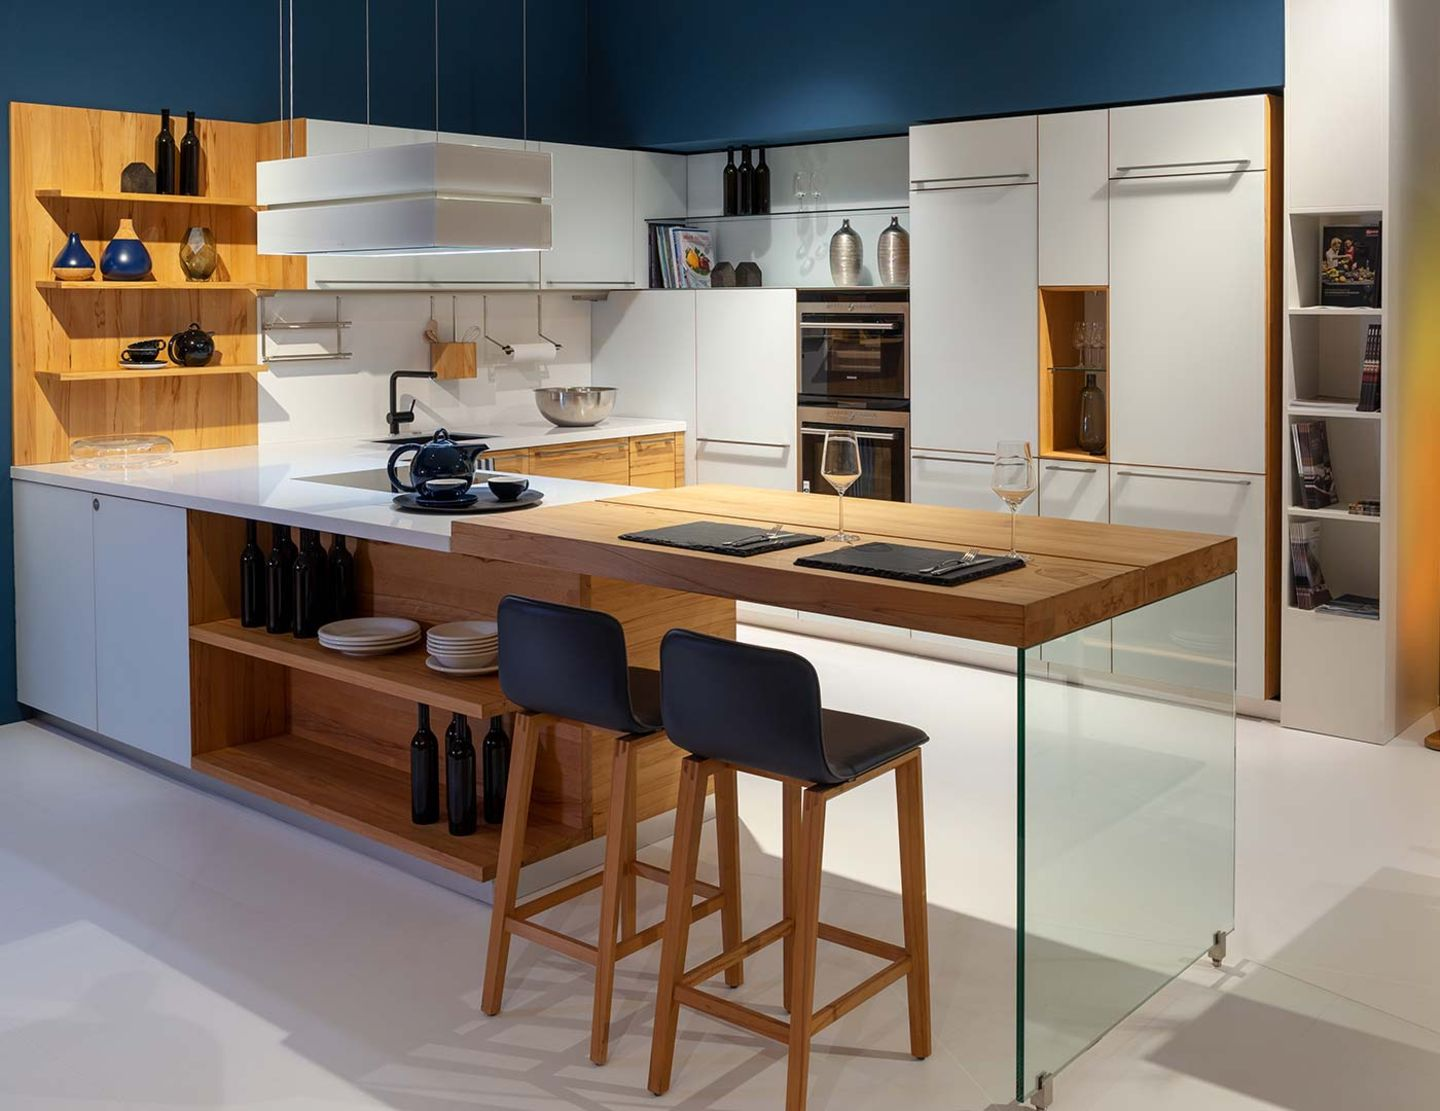 linee kitchen with glass fronts made of solid wood at TEAM 7 Hamburg Altona